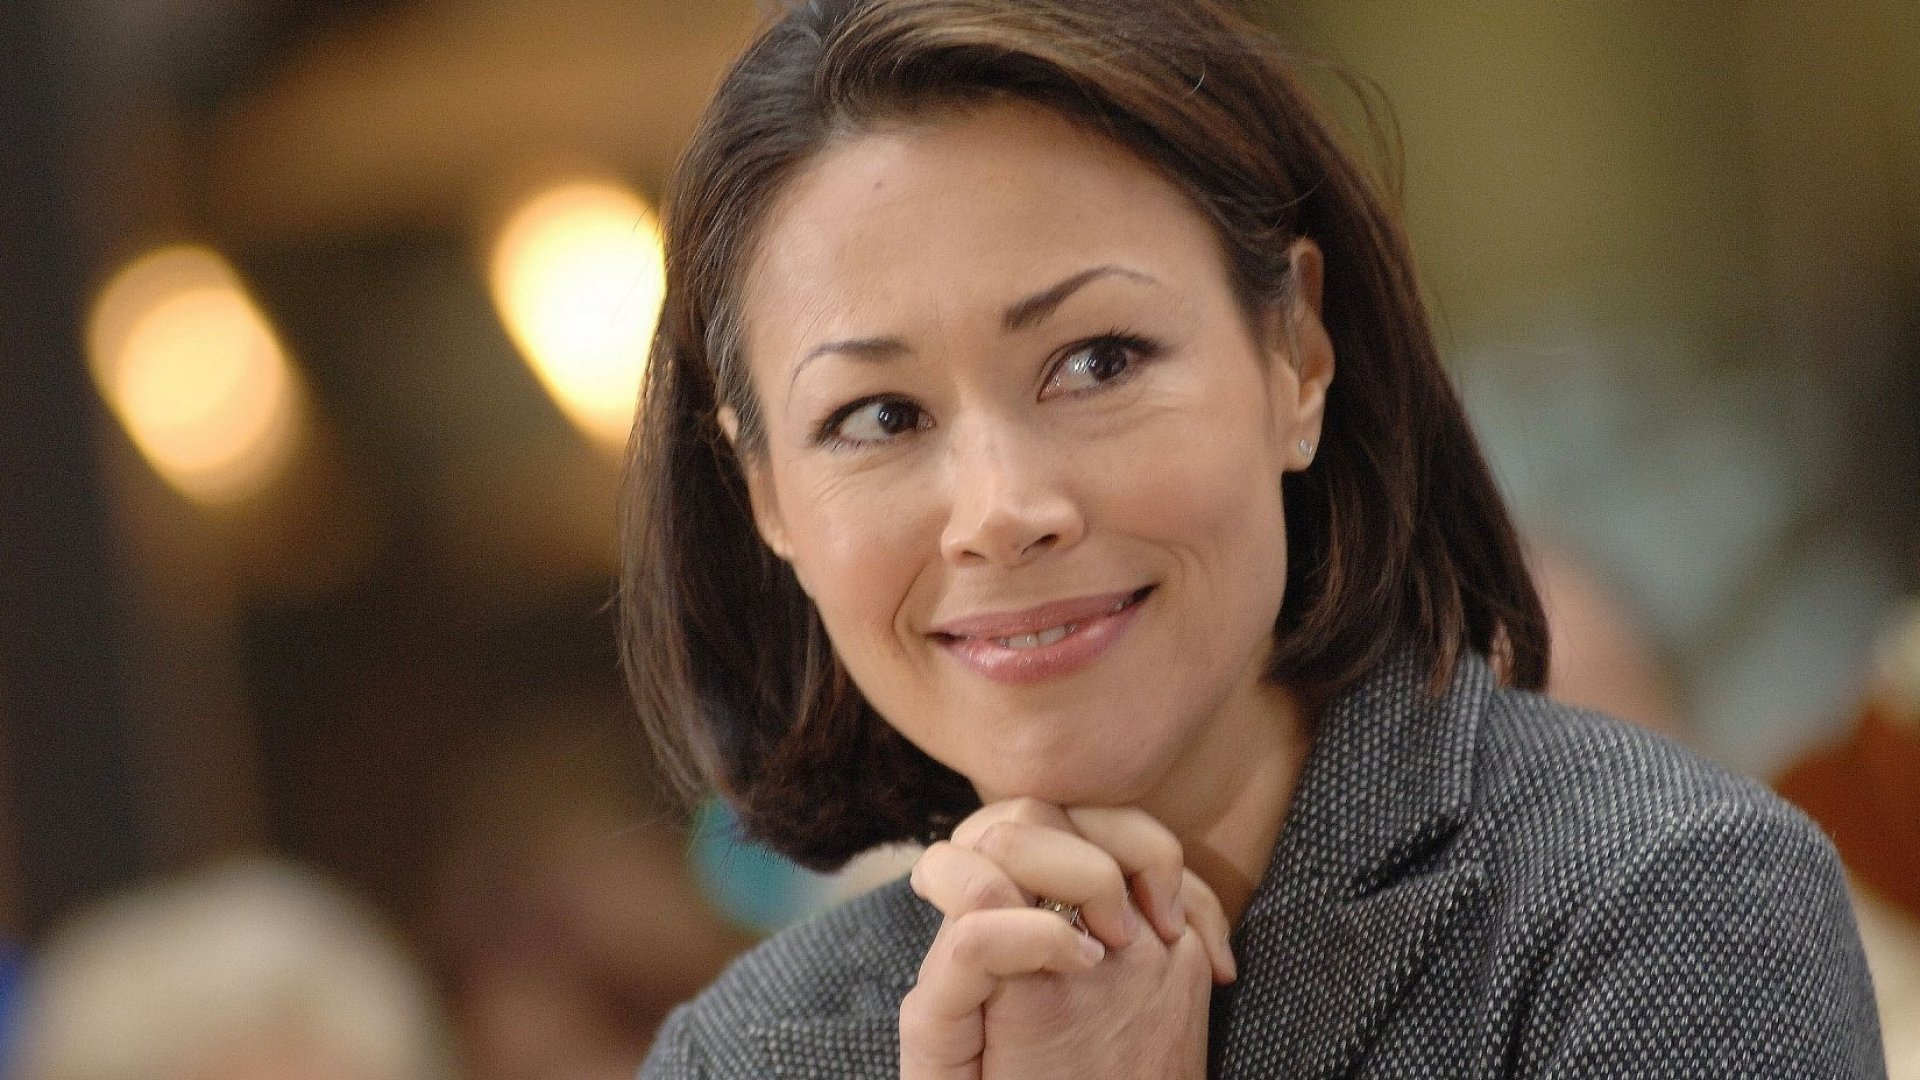 10 Years Ago, Ann Curry Was Nice to My Sister on a Plane. Here's Why I Will Never Forget the Story